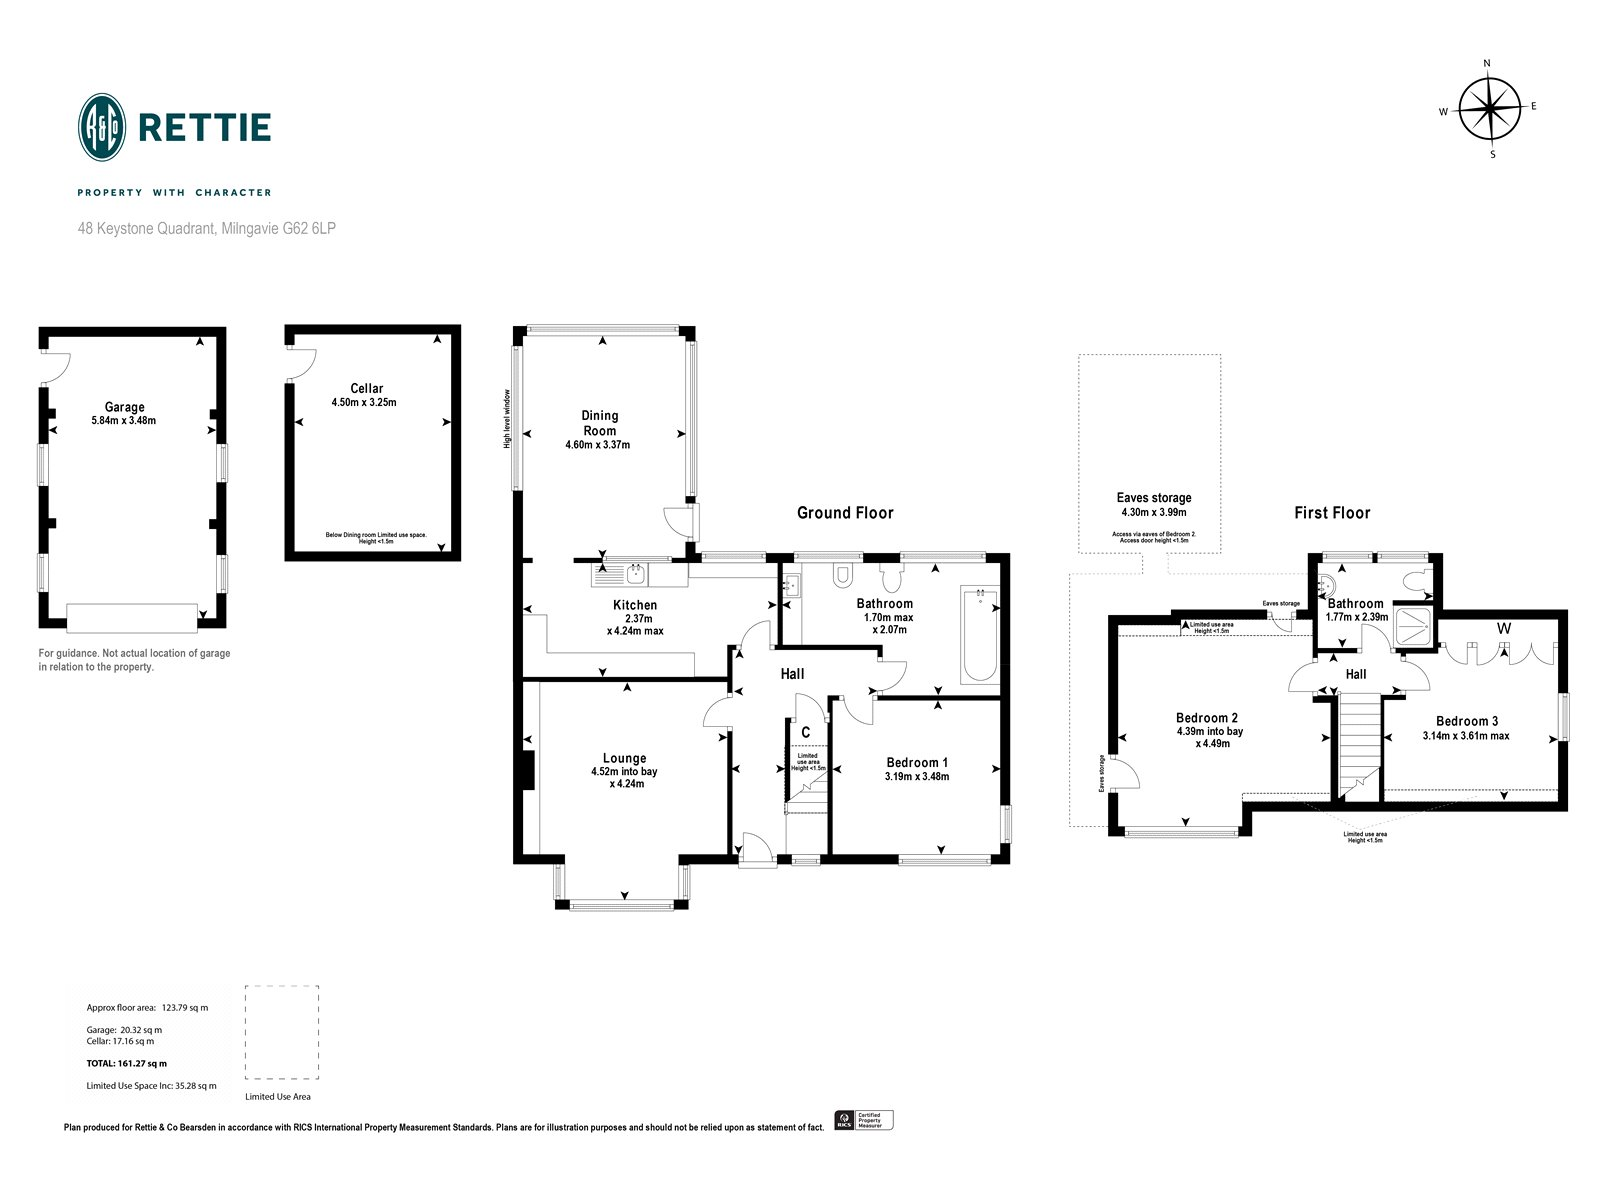 Floorplans for Keystone Quadrant, Milngavie, Glasgow, G62